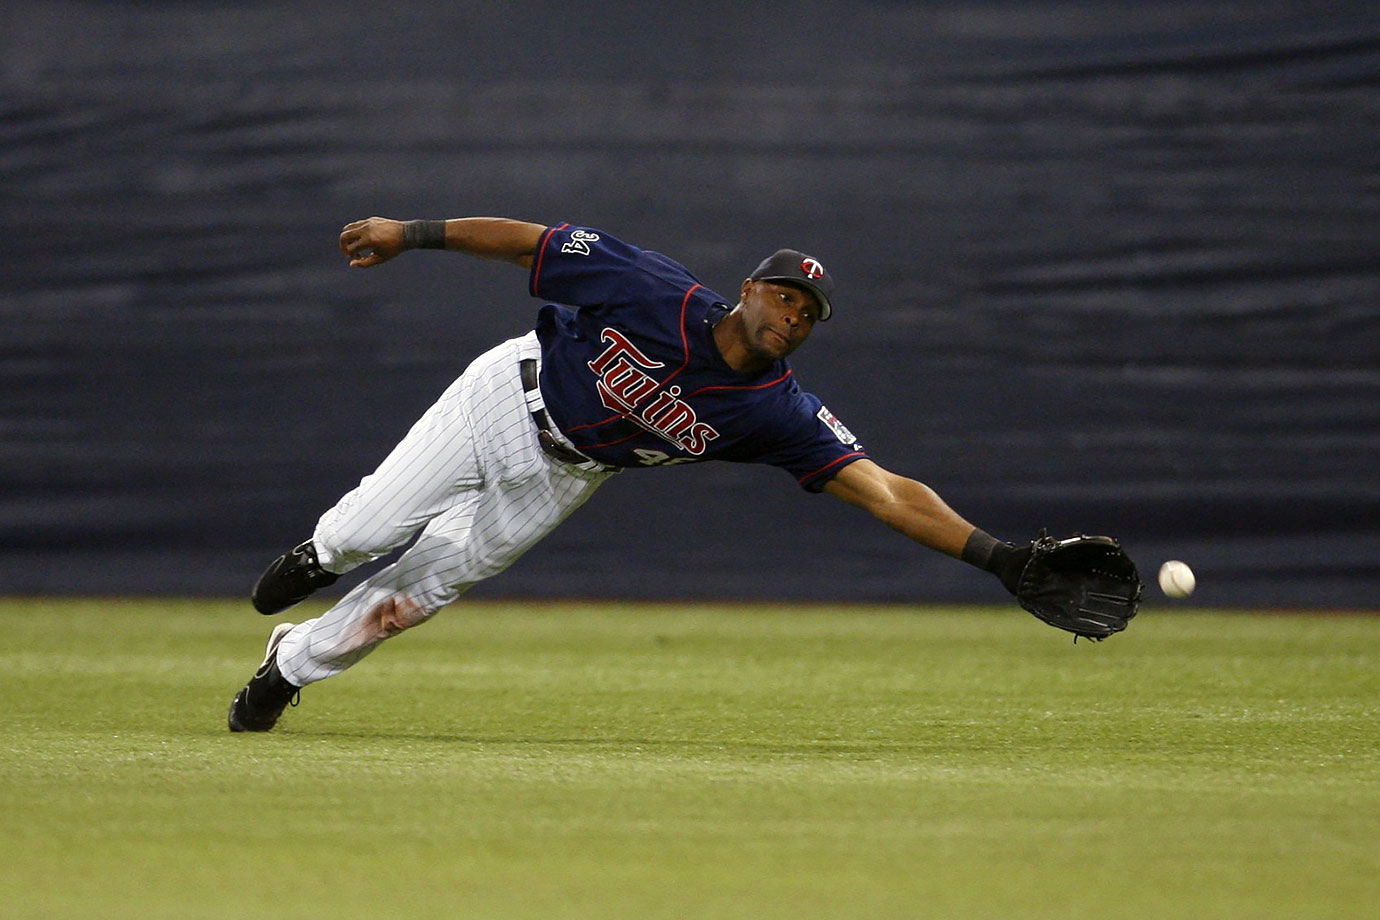 Hunter left the game as one of the most decorated outfielders in baseball history, earning nine gold gloves between 2001-2009. Ken Griffey Jr., Al Kaline and Ichiro Suzuki are tied for the most American League gold gloves for an outfielder with 10. Over 2,372 major league games, Hunter compiled a .277 batting average with 353 home runs and 2,452 hits. He was named an All-Star five times.